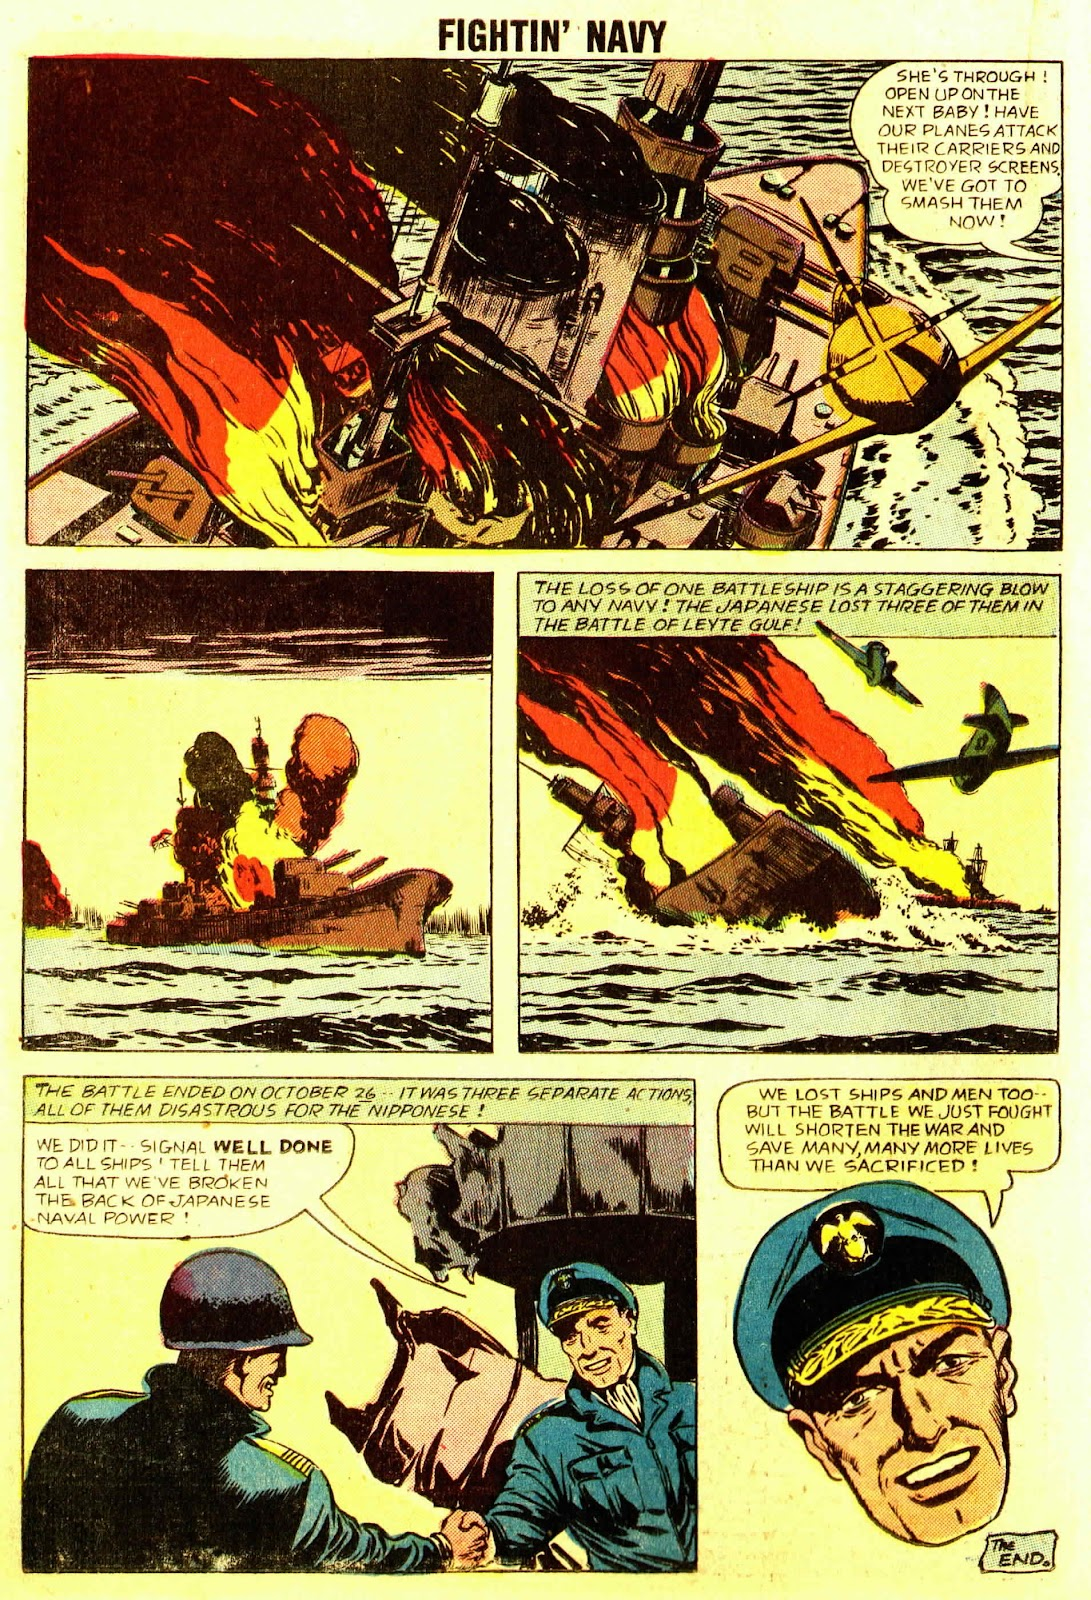 Read online Fightin' Navy comic -  Issue #83 - 24